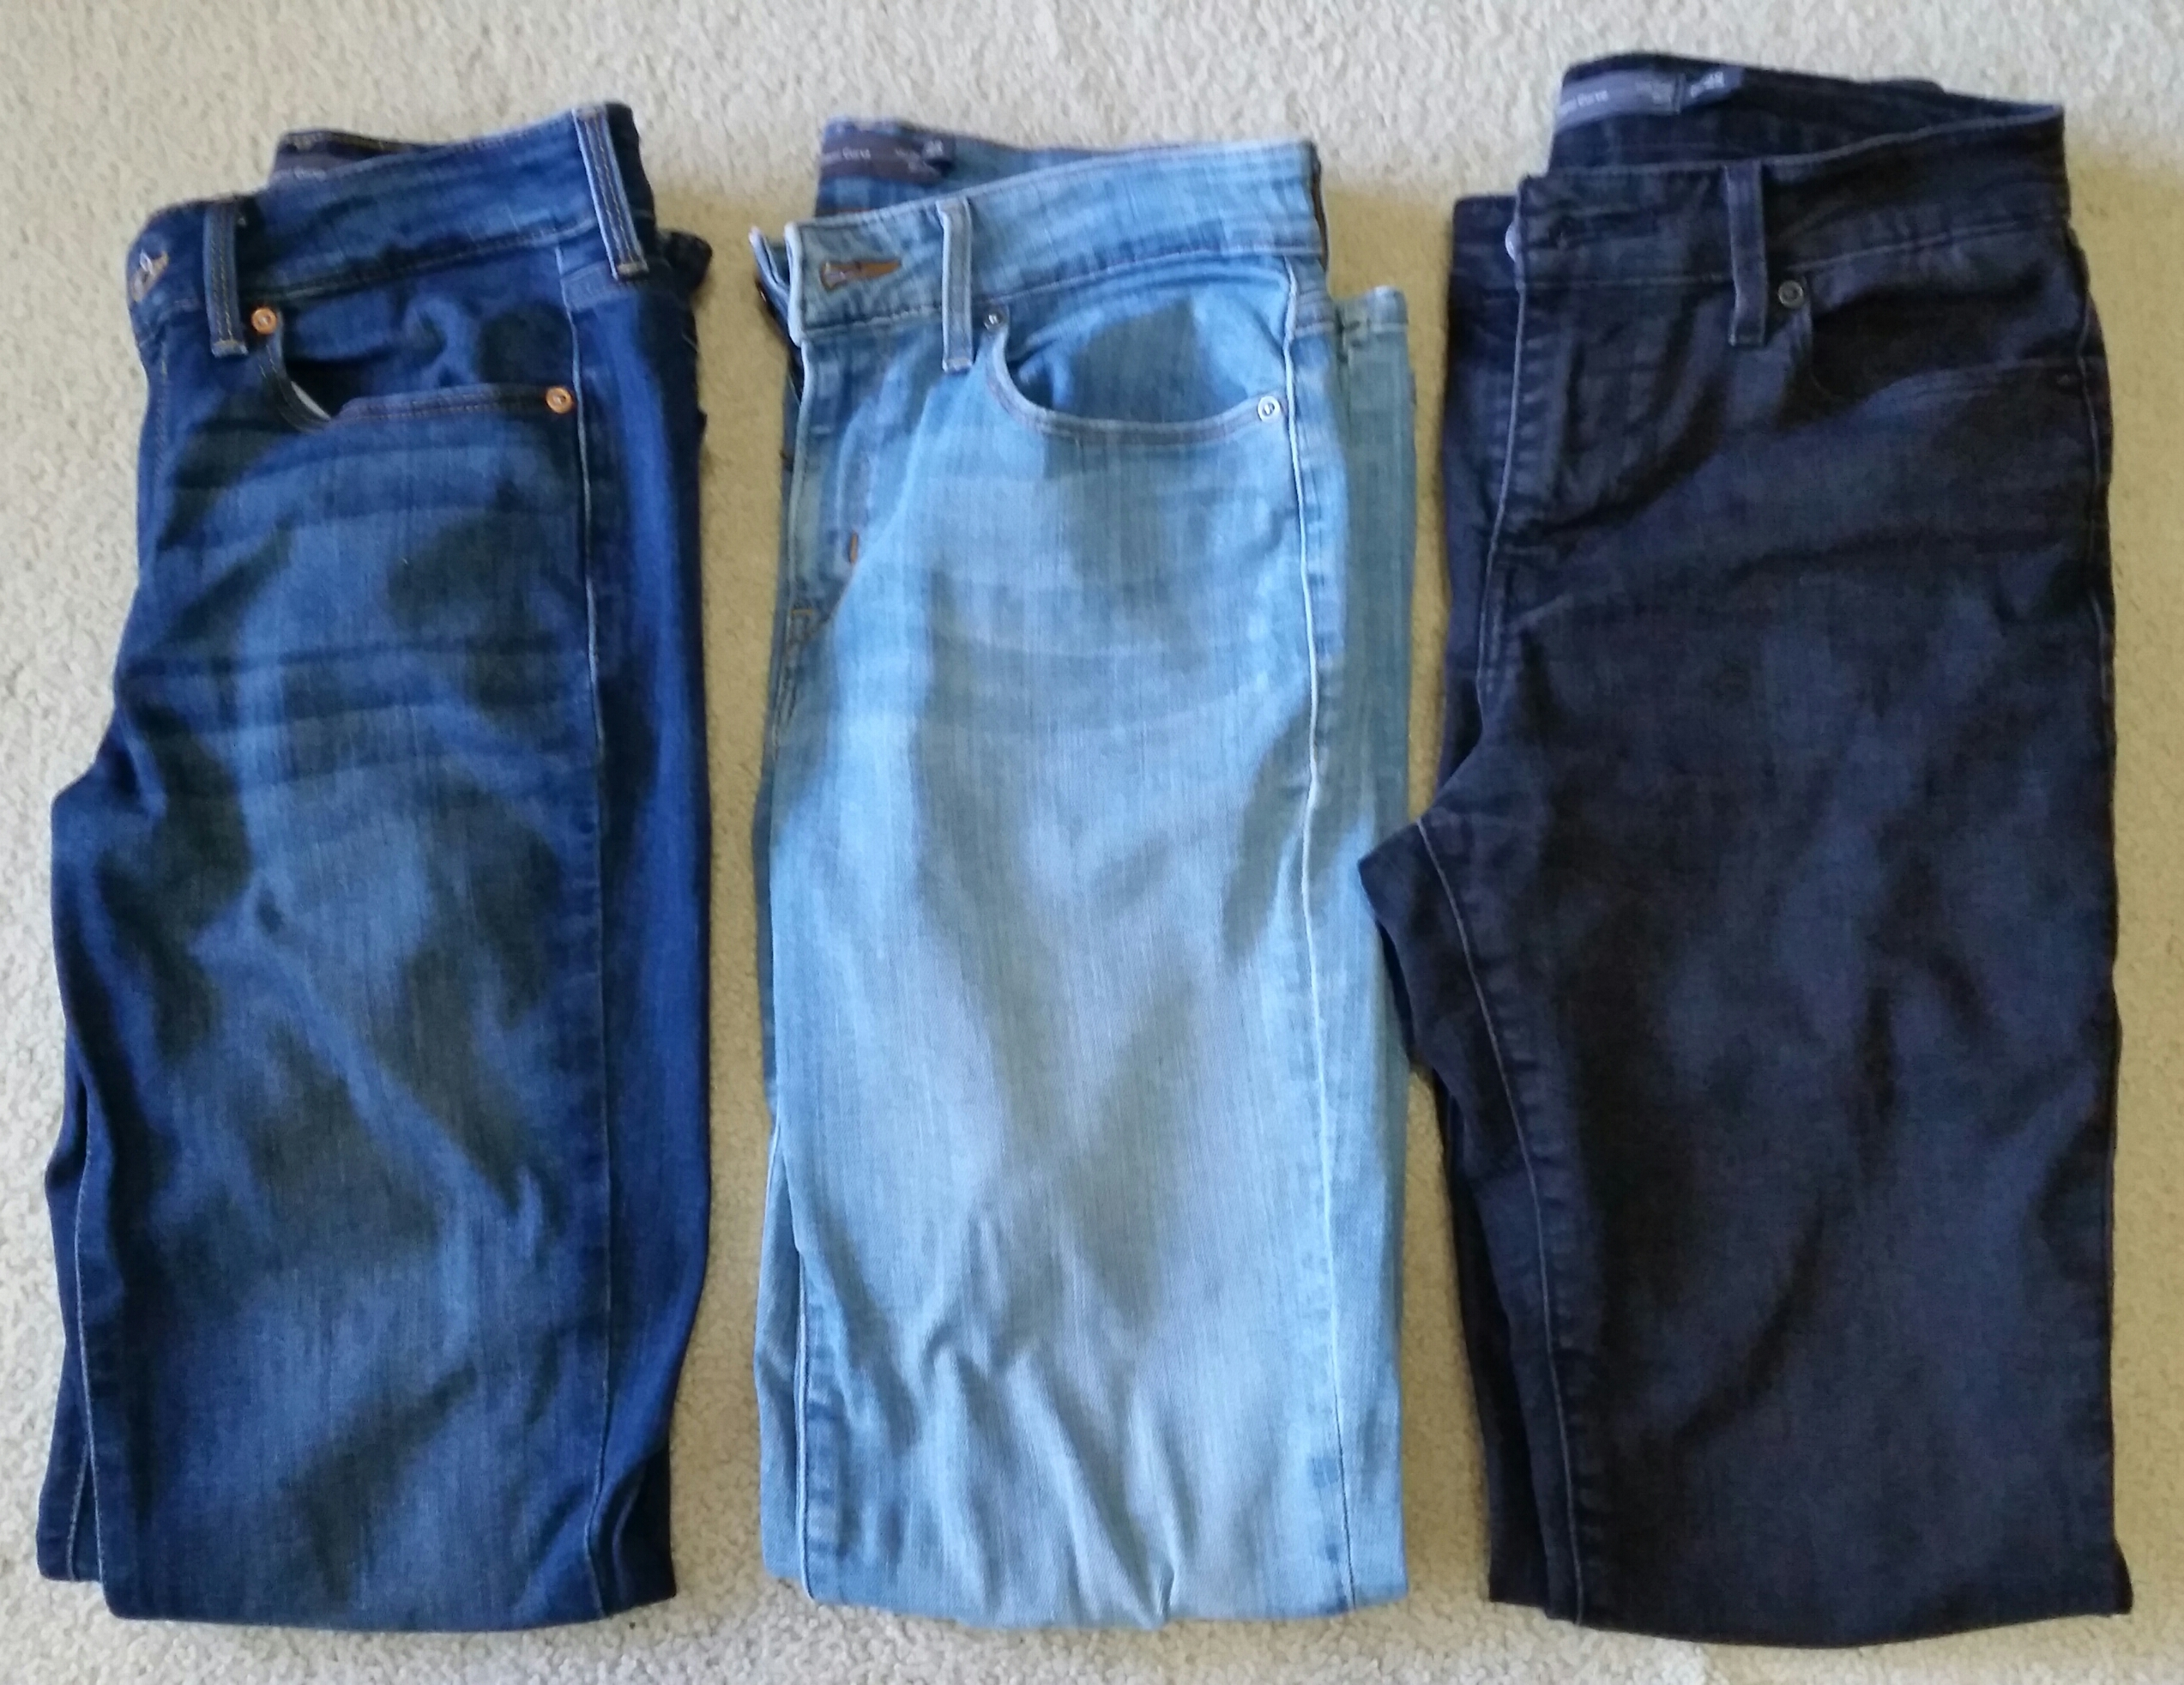 3 Pre-Owned Women's Levis Demi Curve Mid Rise Slim Stretch Jeans - $40